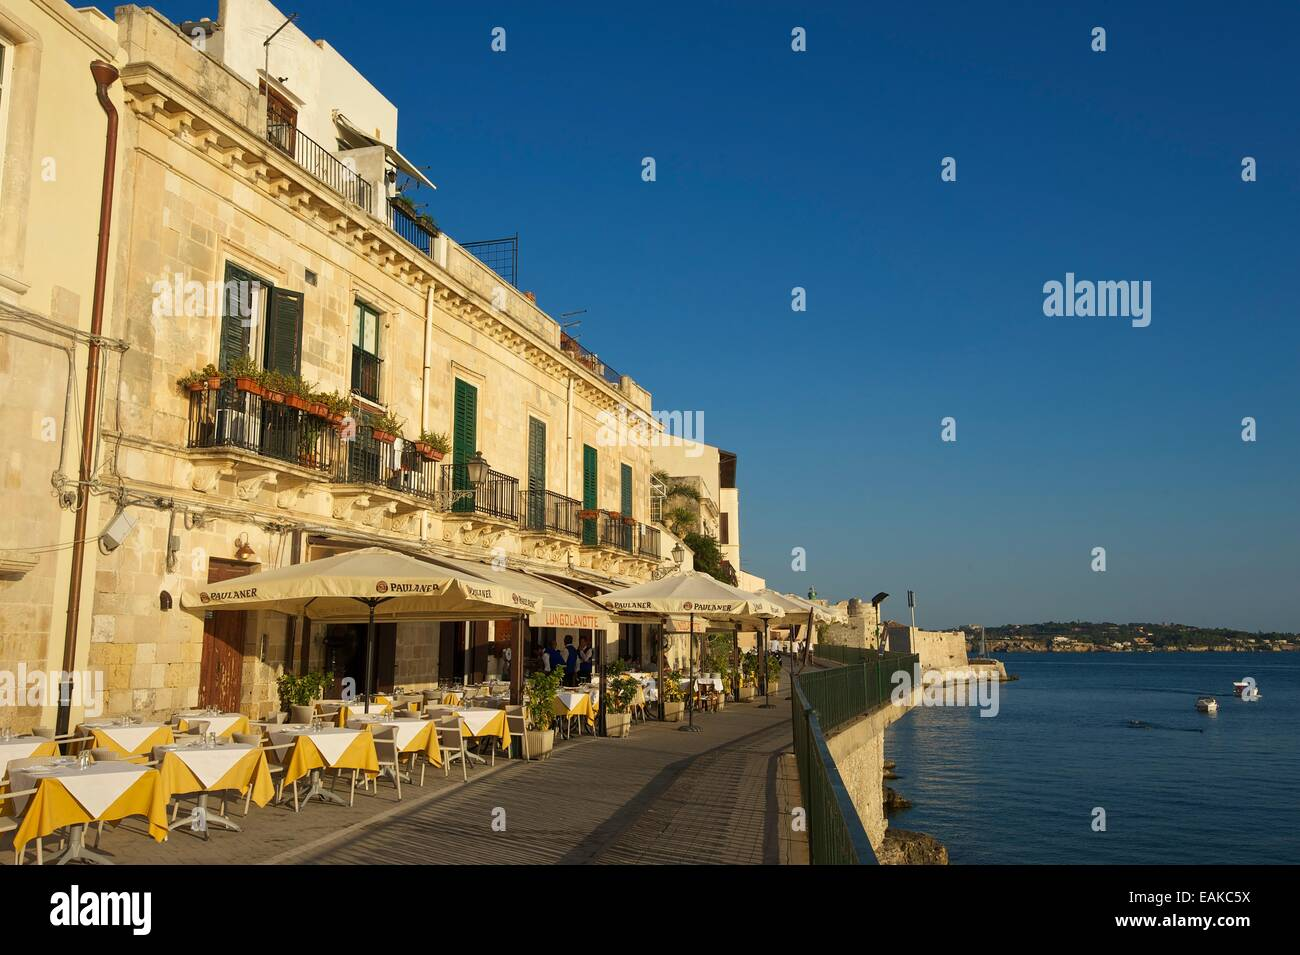 Promenade in the historic town centre, Ortygia, Syracuse, Province of Syracuse, Sicily, Italy - Stock Image